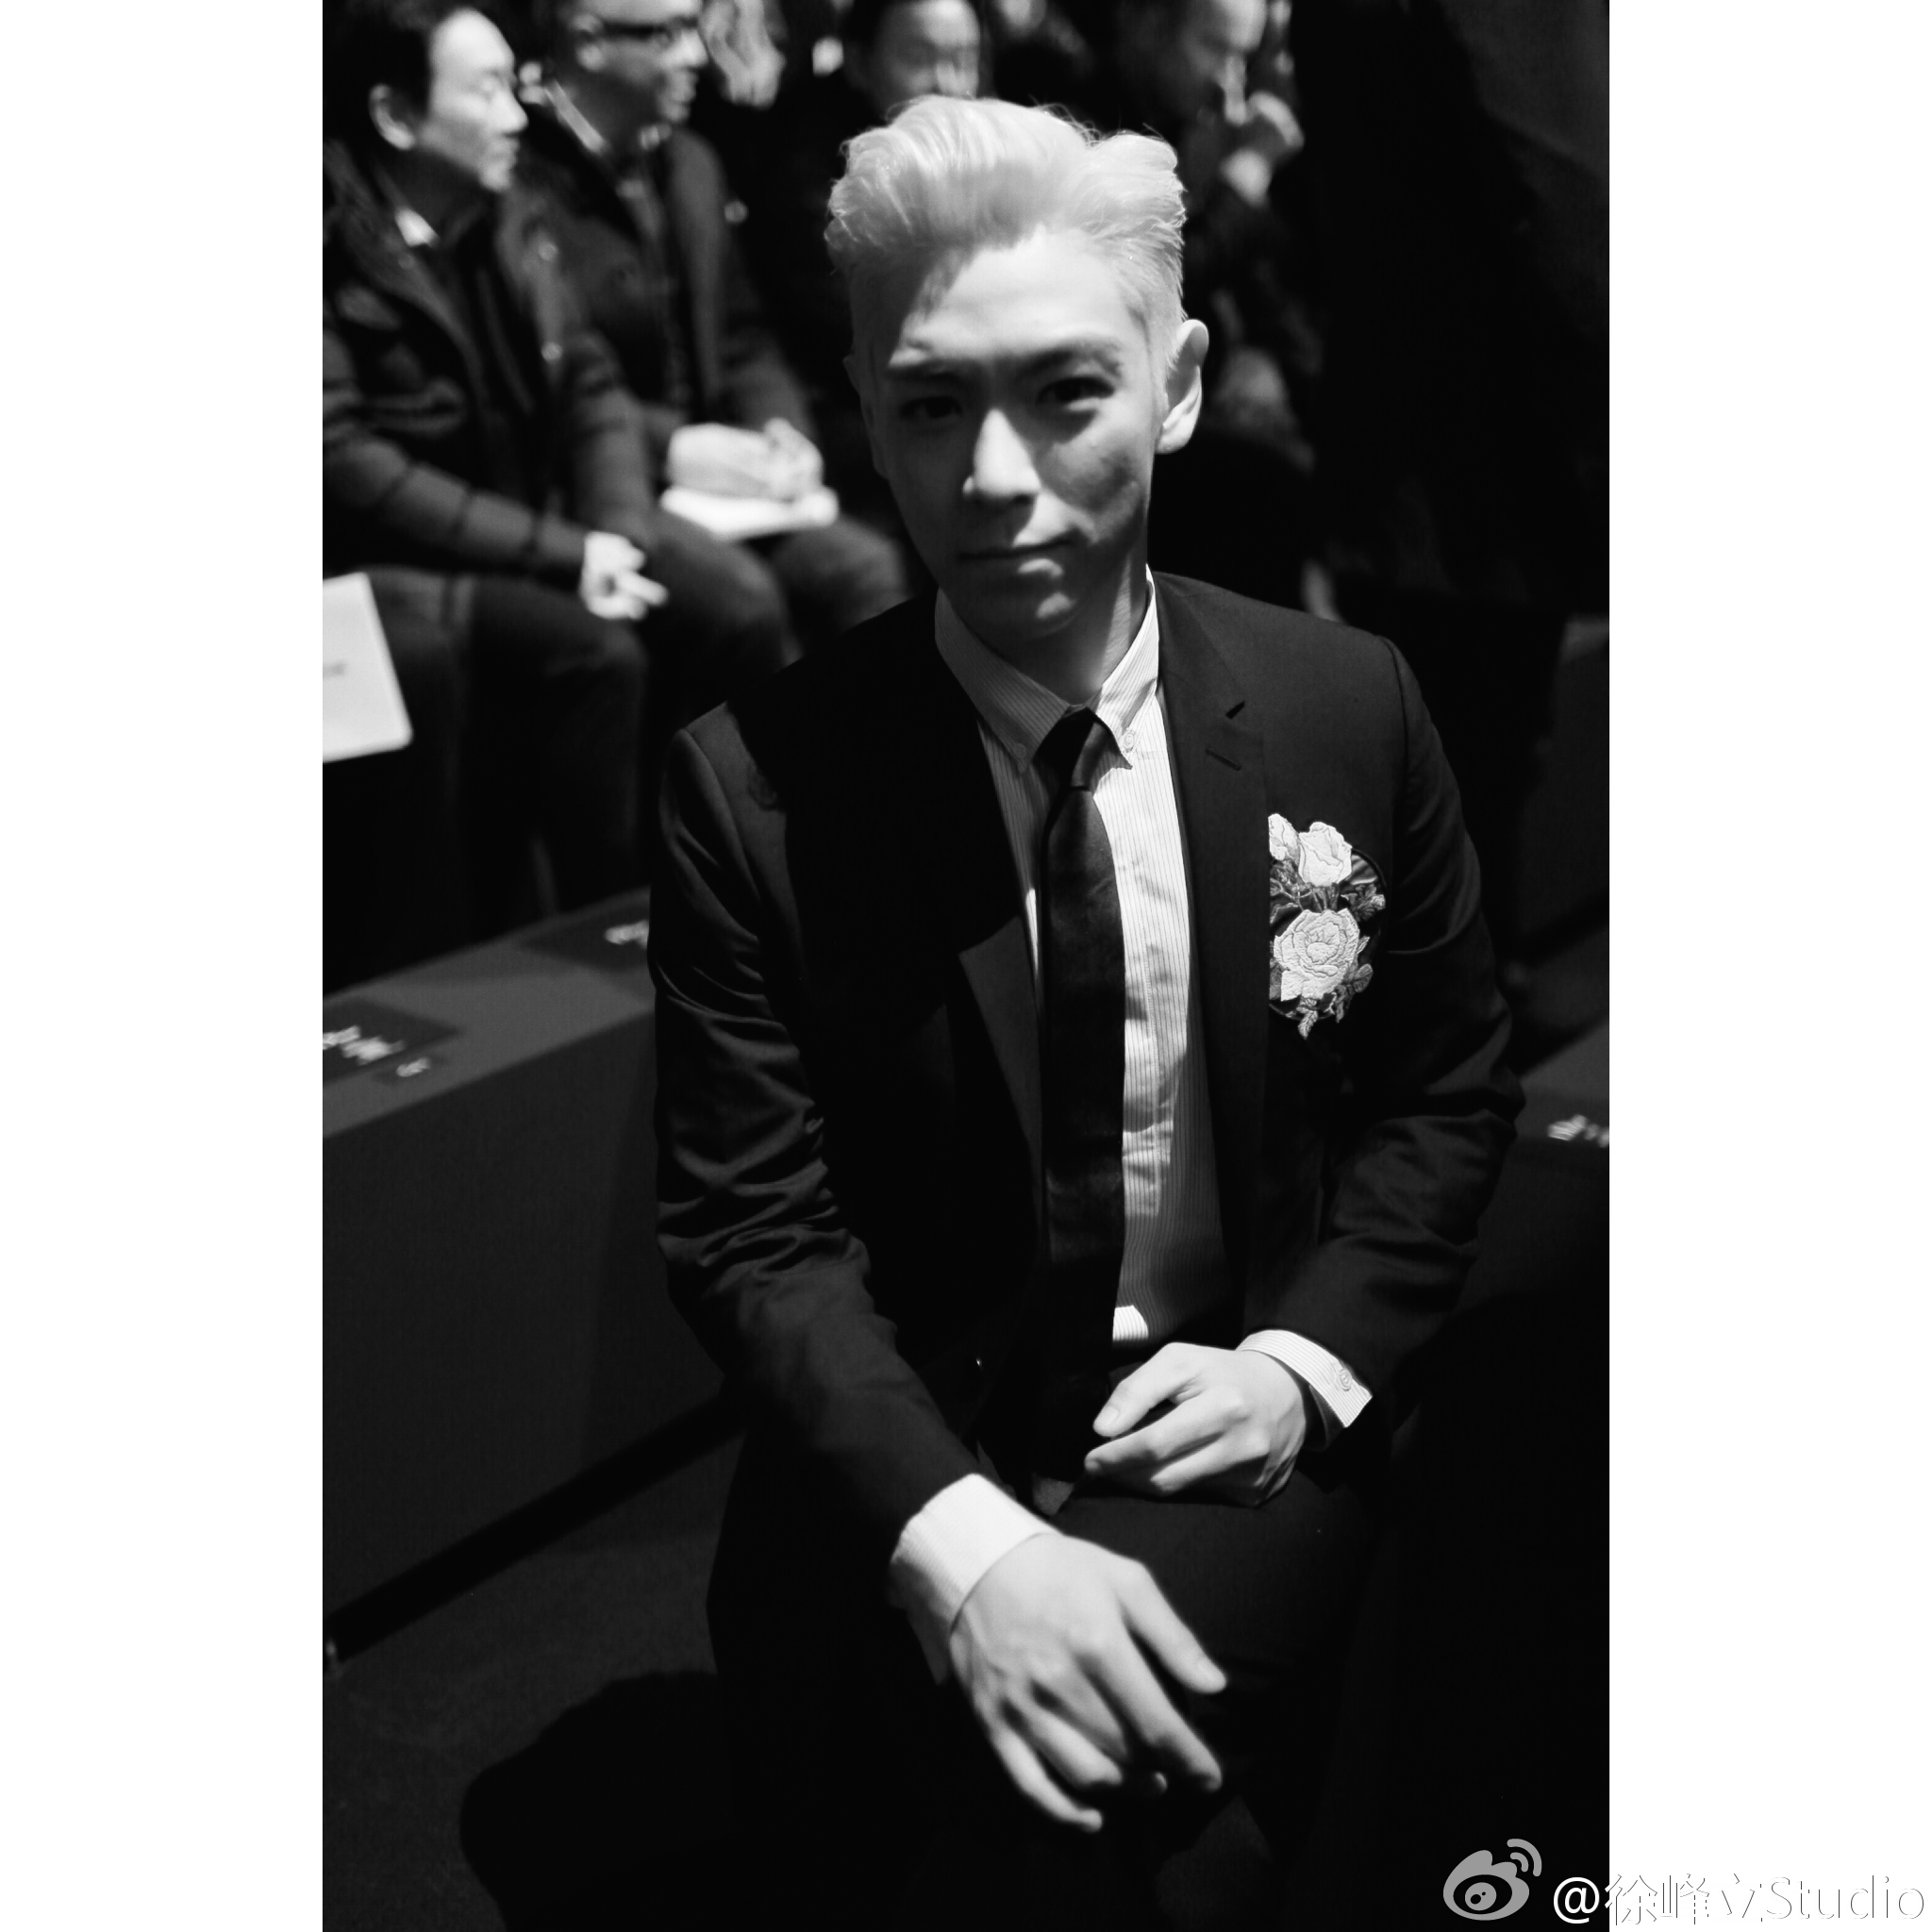 TOP - Dior Homme Fashion Show - 23jan2016 - 徐峰立Studio - 01